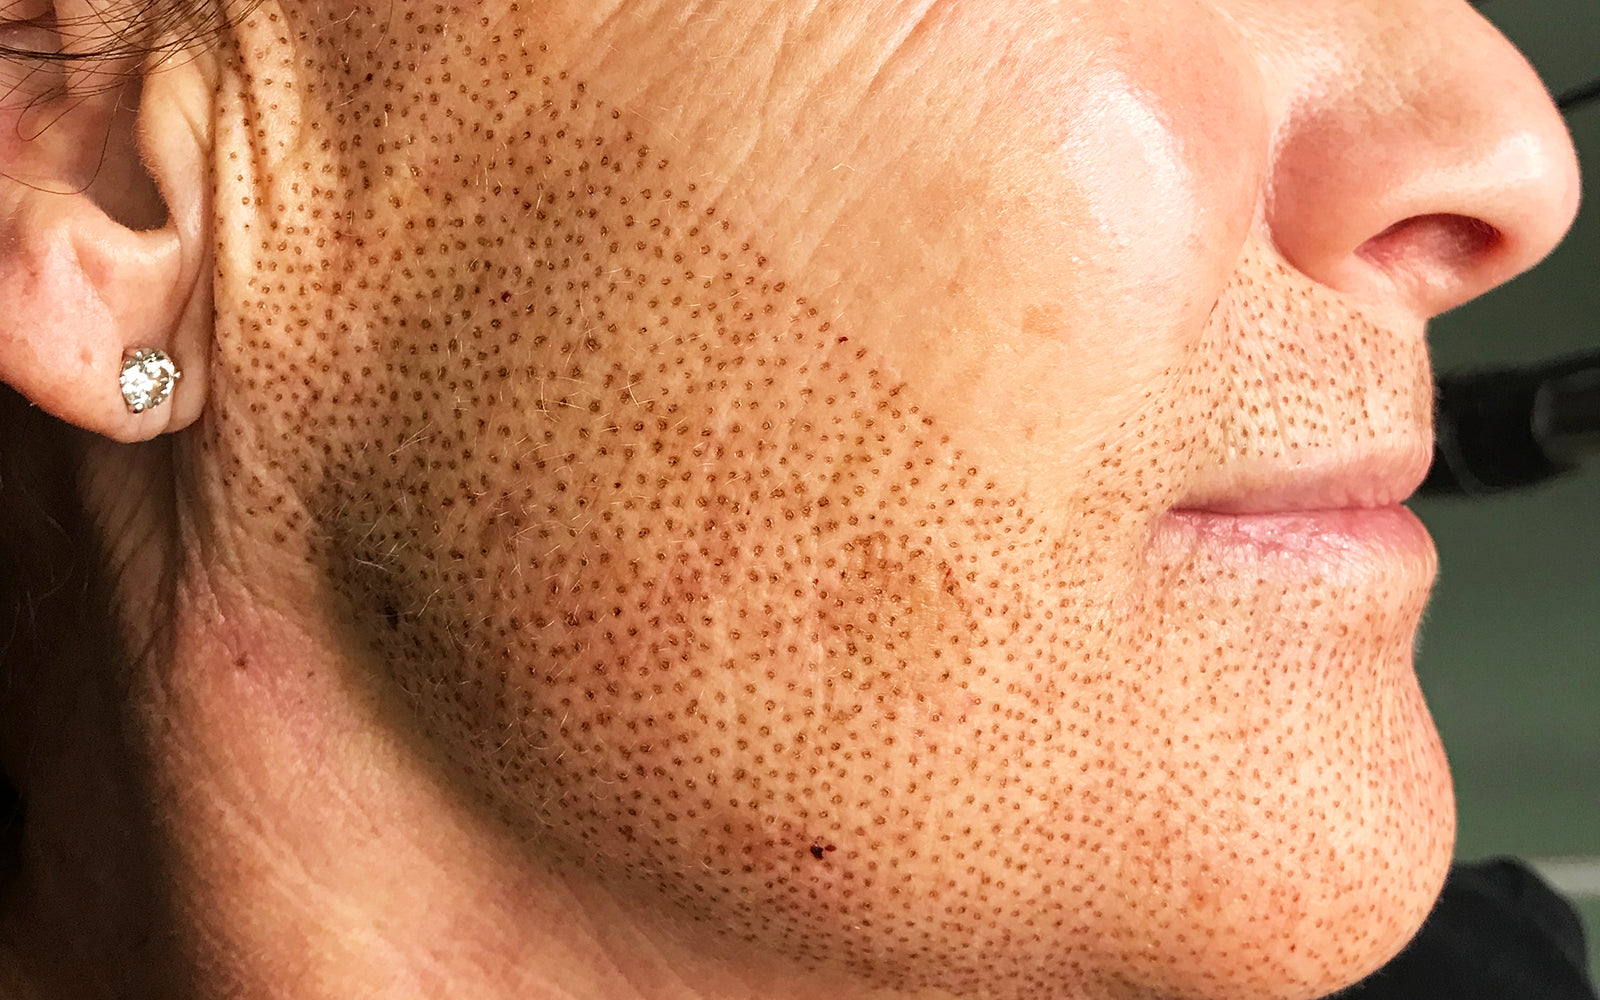 Zynergy Beauty Salon in Gilbert, Arizona offers Plasma Pen services. Plasma Pen is a non-invasive procedure to tighten and lift skin. It treats multiple layers of the skin to improve wrinkles and elasticity.